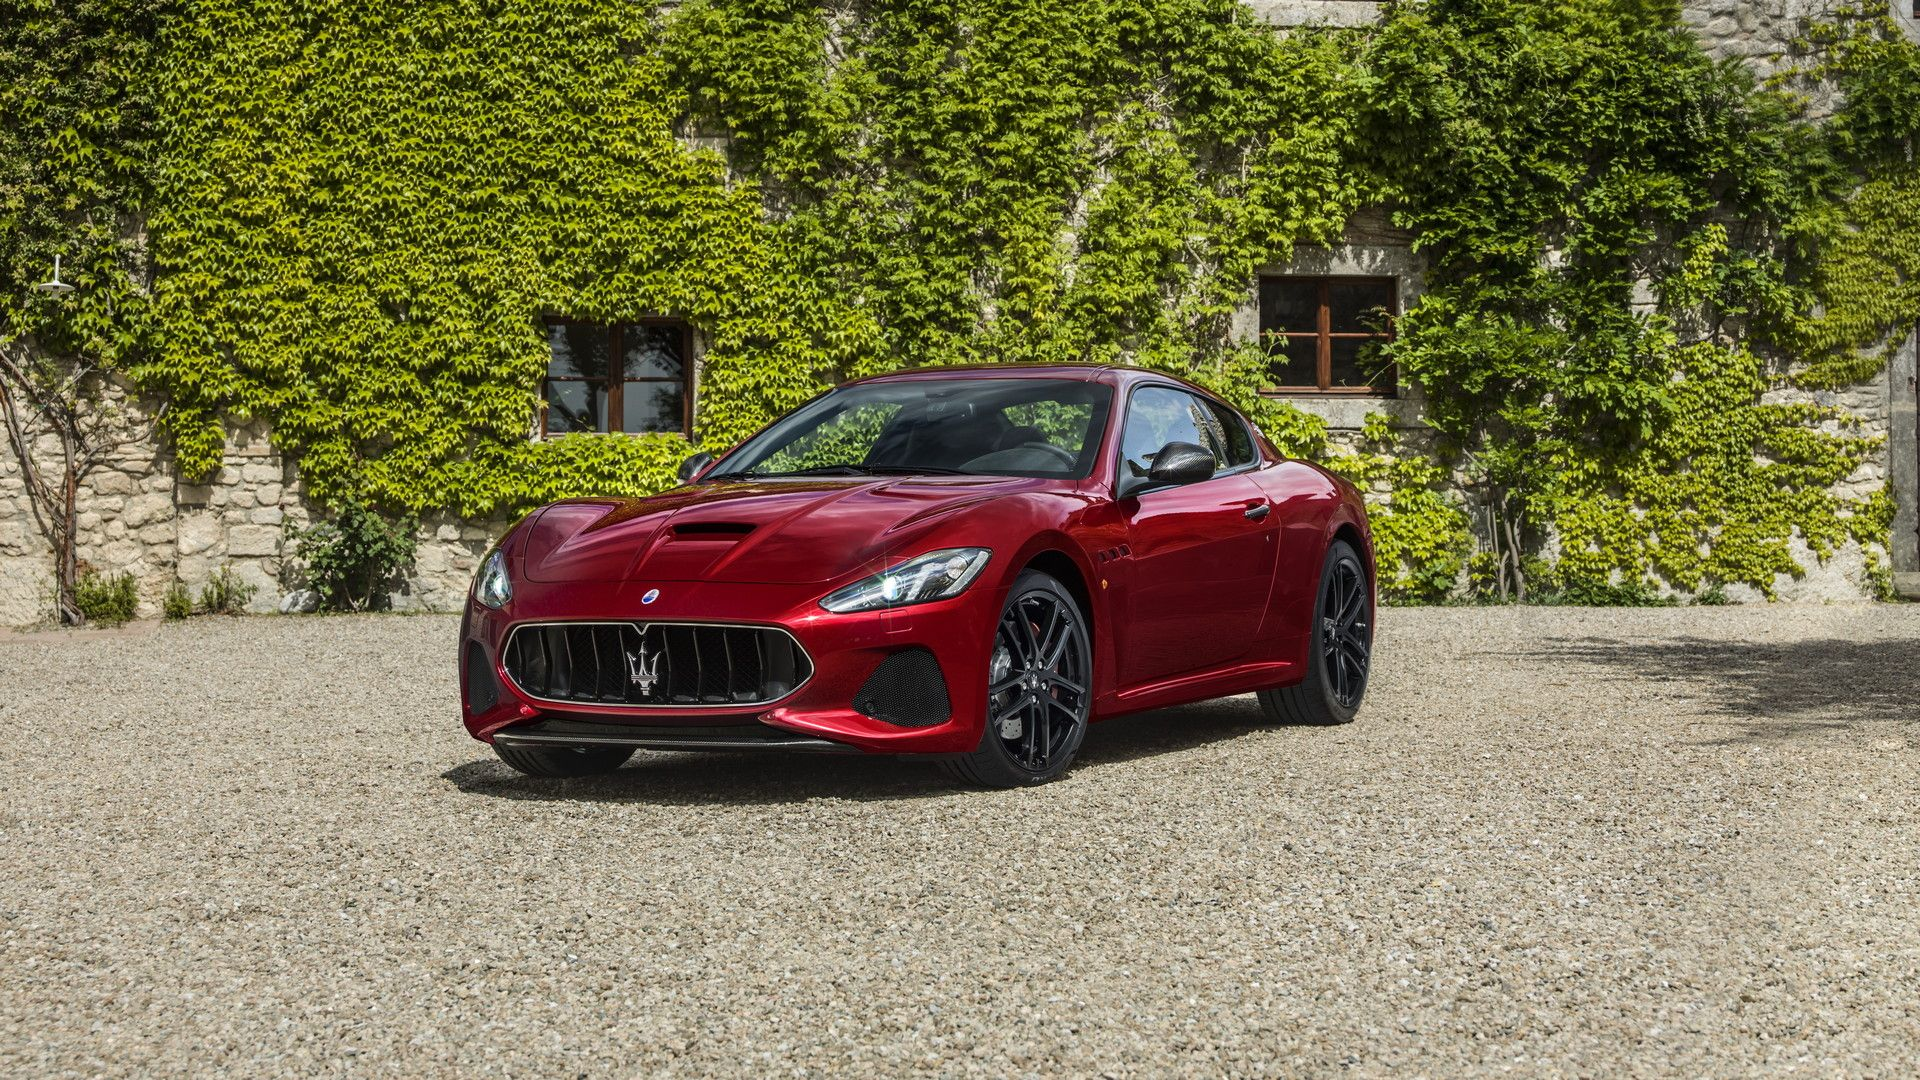 maserati granturismo 2018 maserati le v sinet. Black Bedroom Furniture Sets. Home Design Ideas